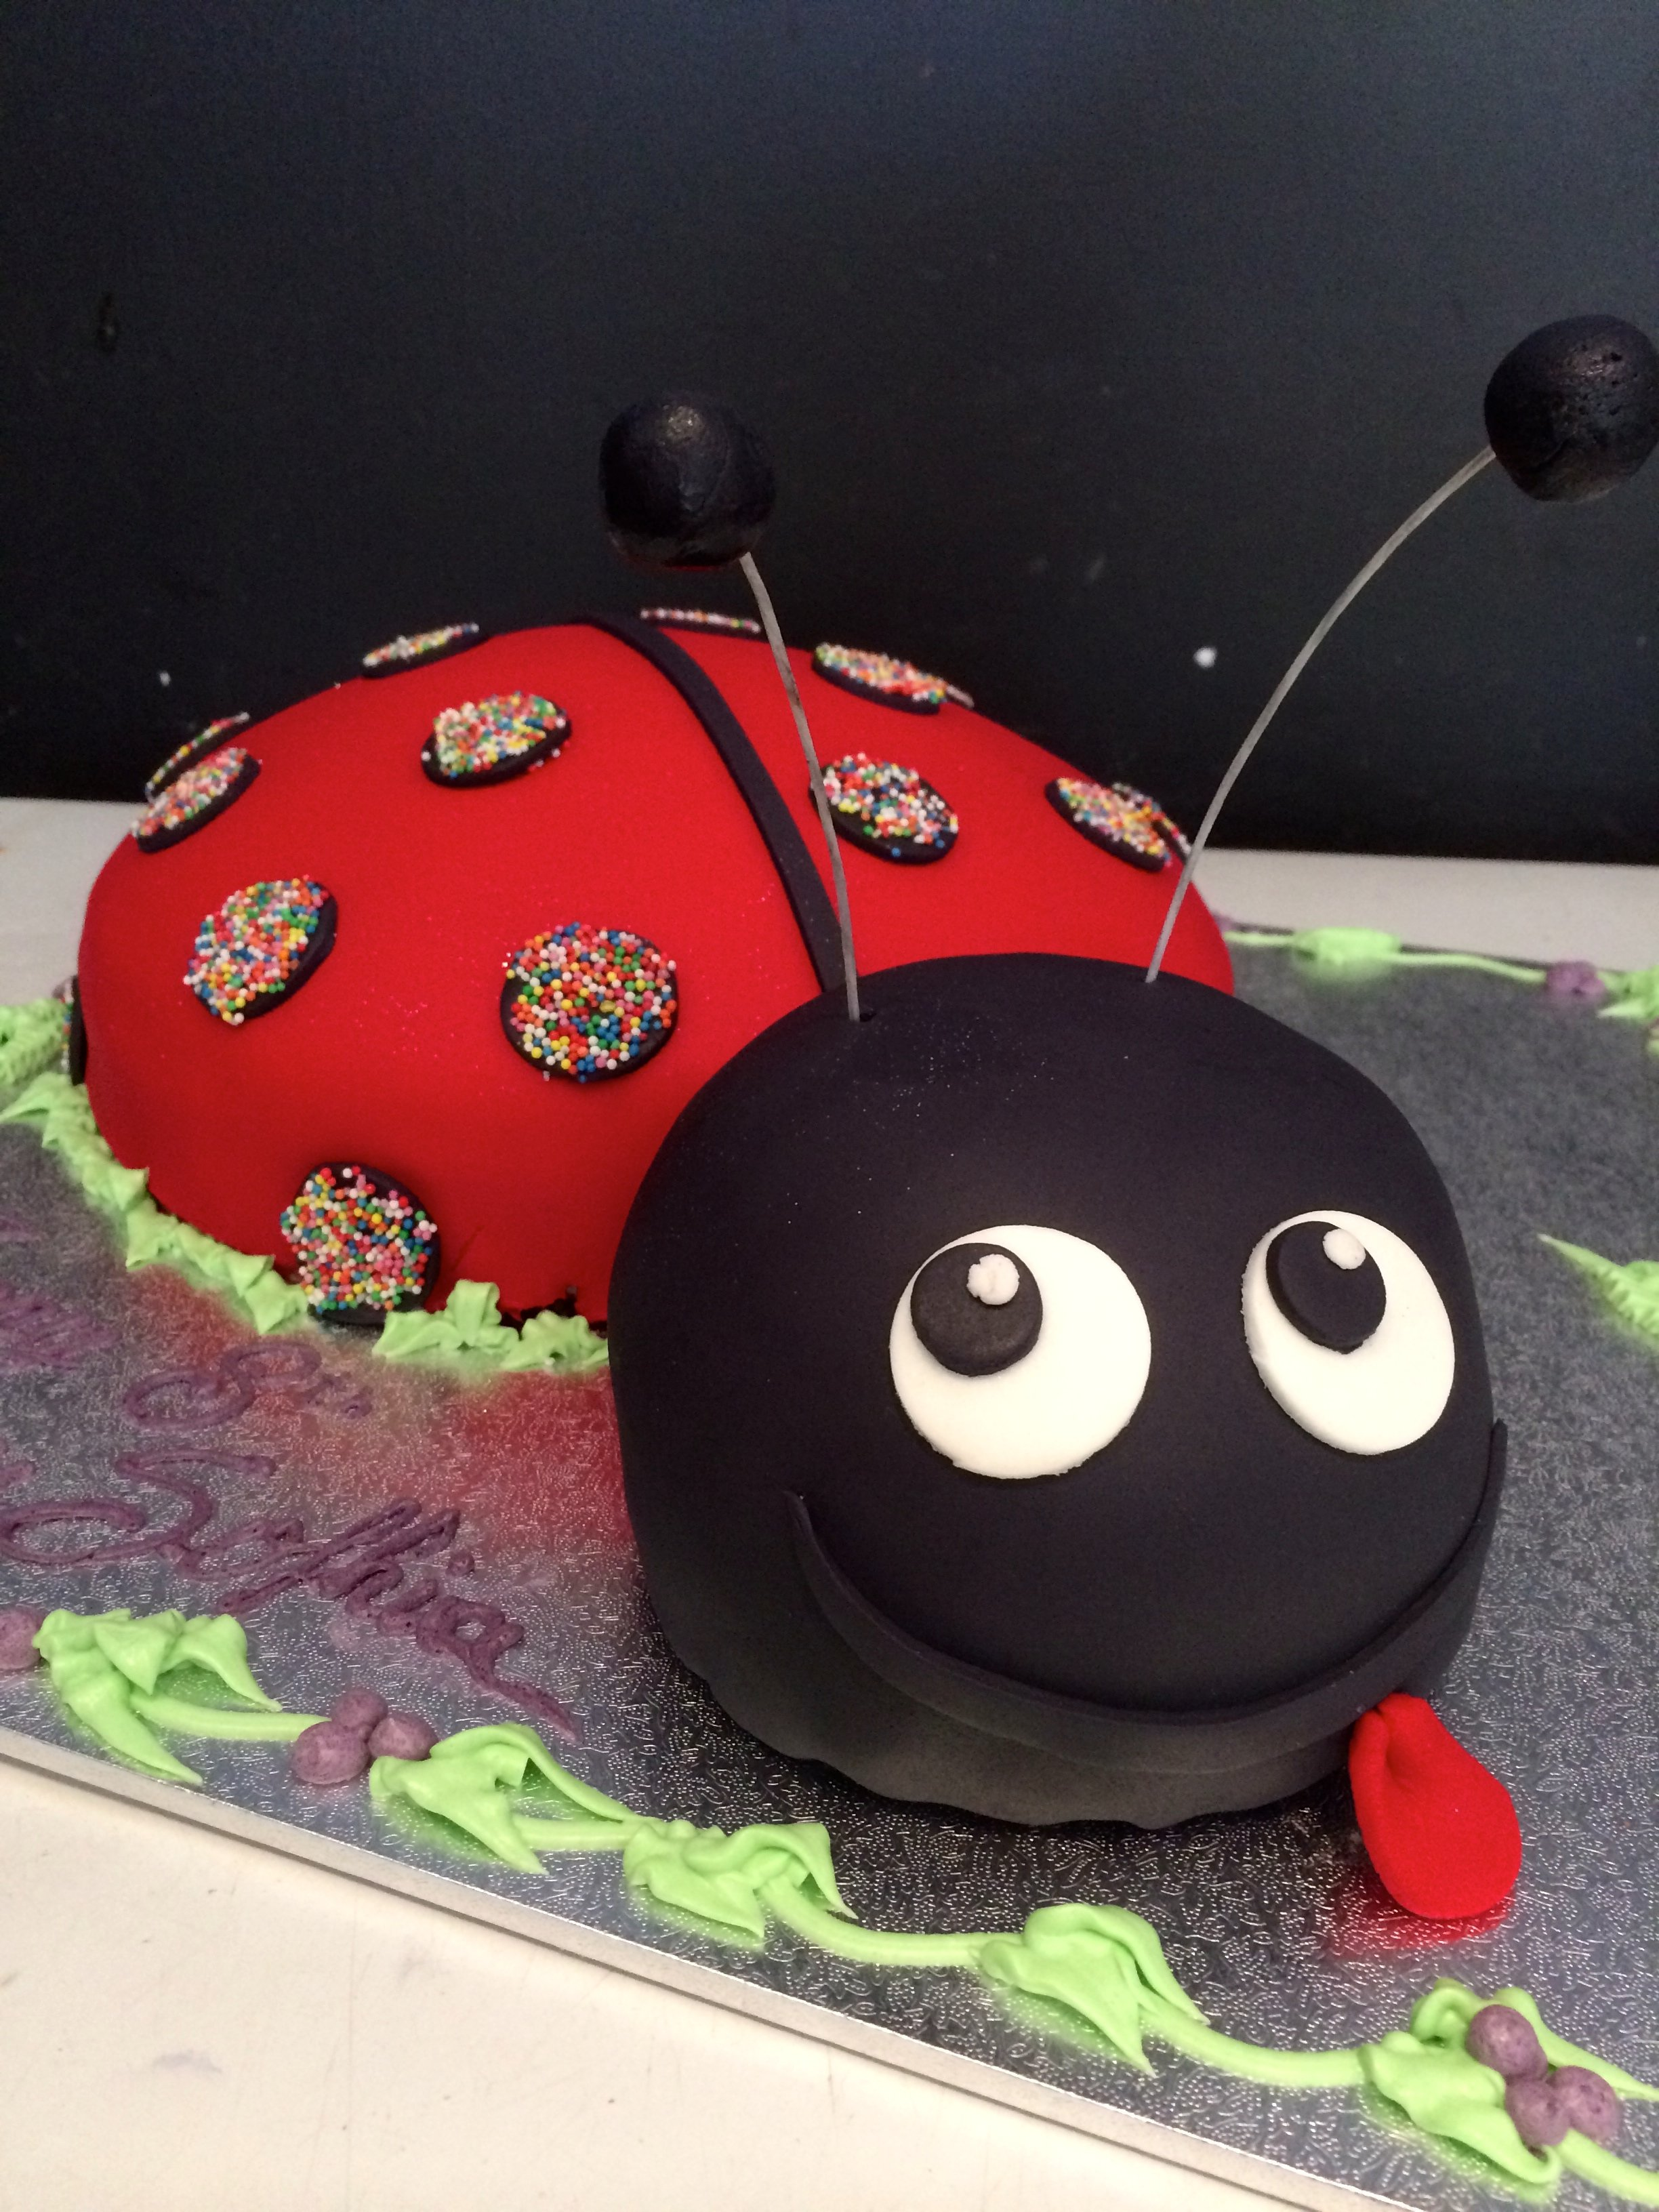 custom lady bird cake in red and black